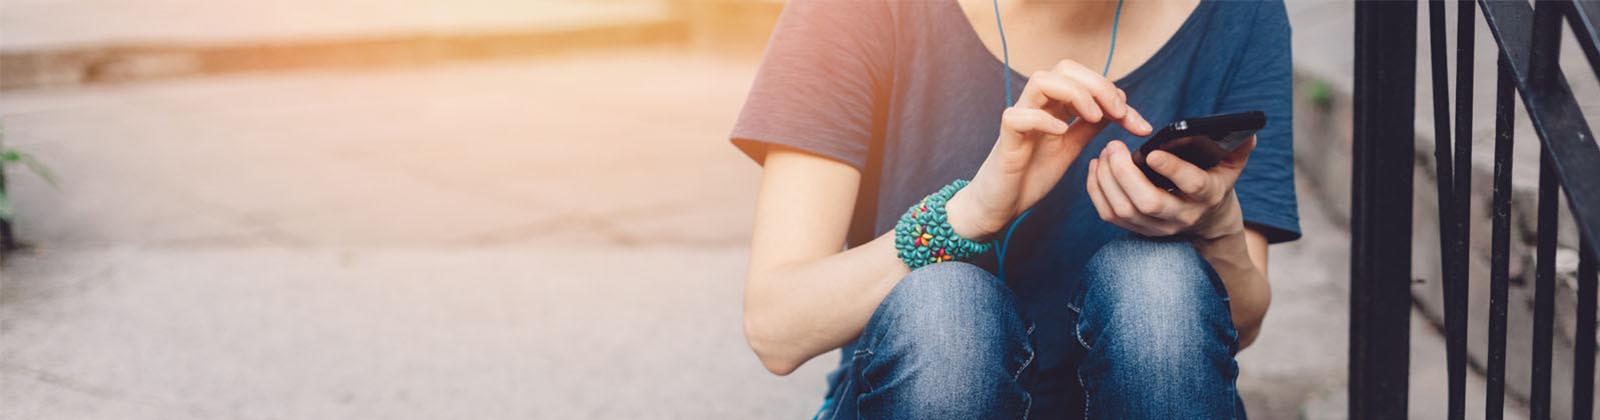 woman sitting on steps using a mobile device